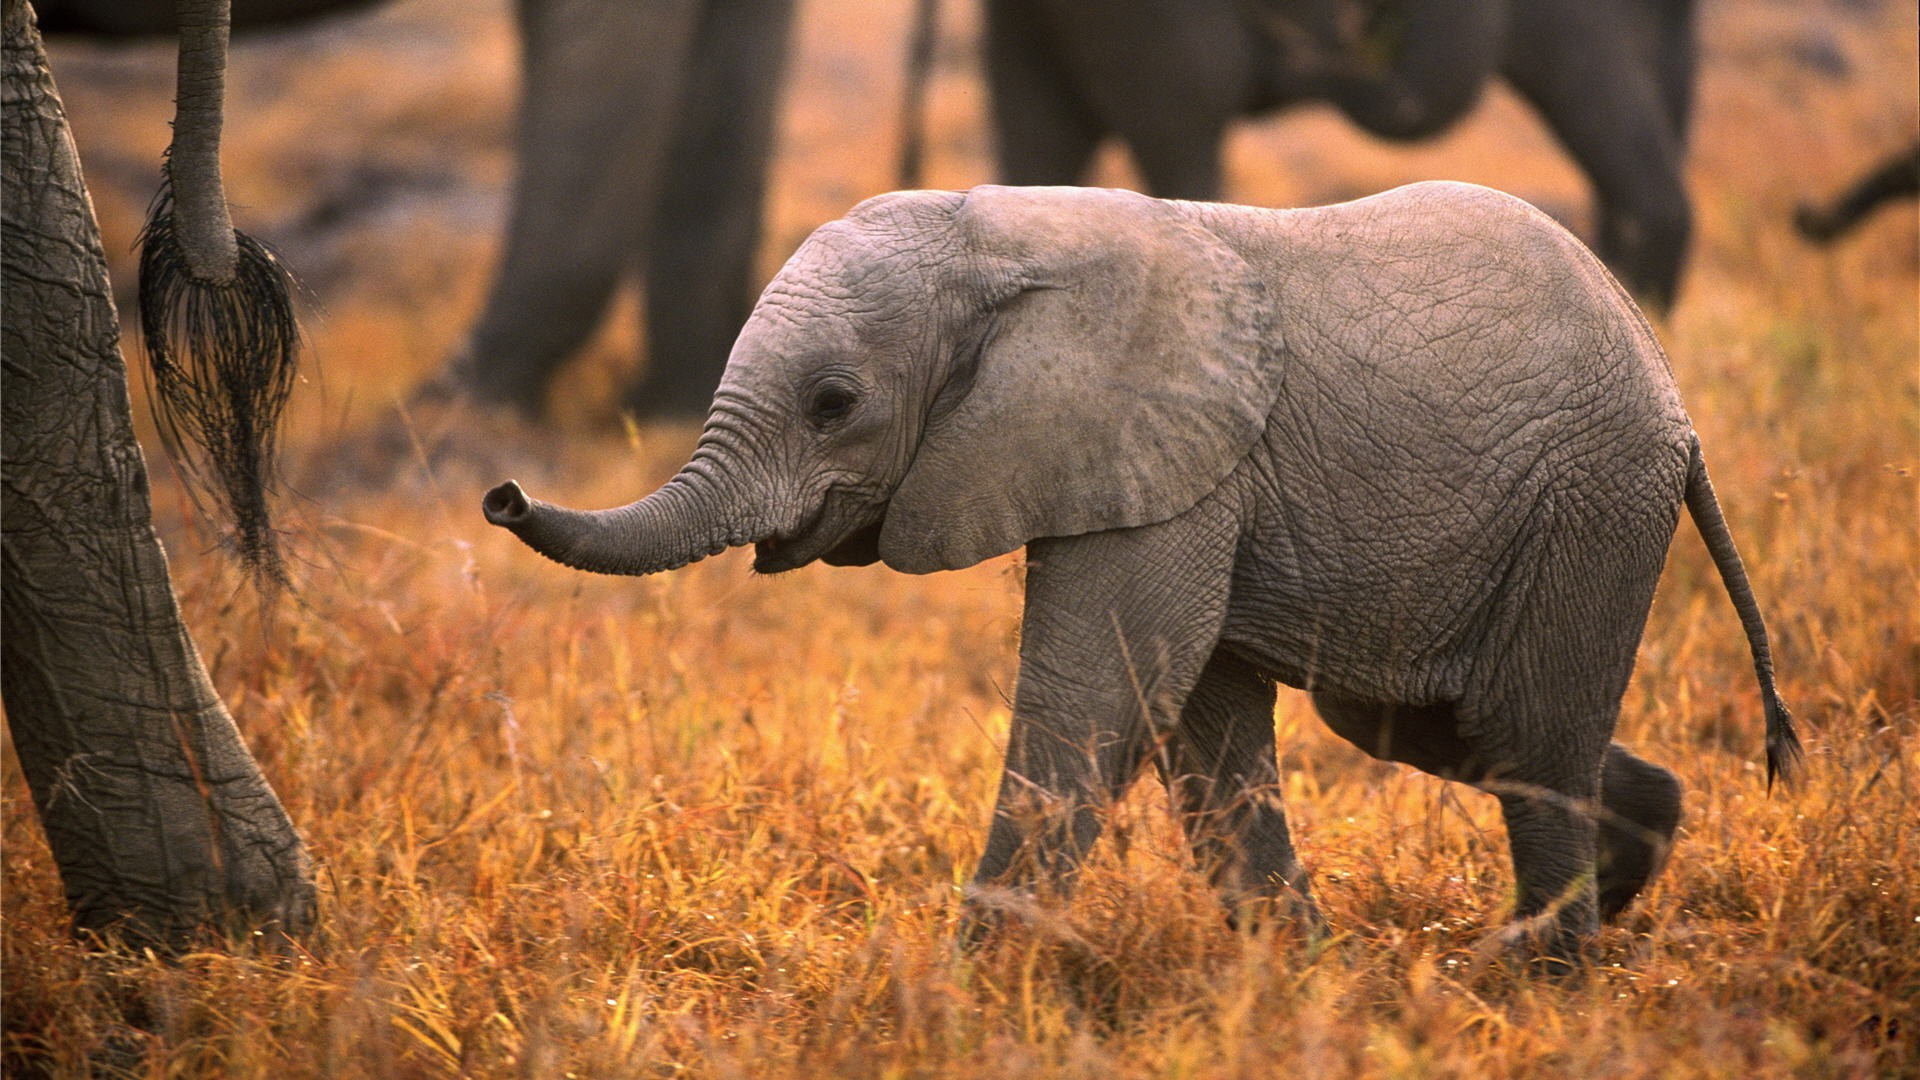 Baby Elephants Playing in Africa HD Wallpaper   New HD 1920x1080